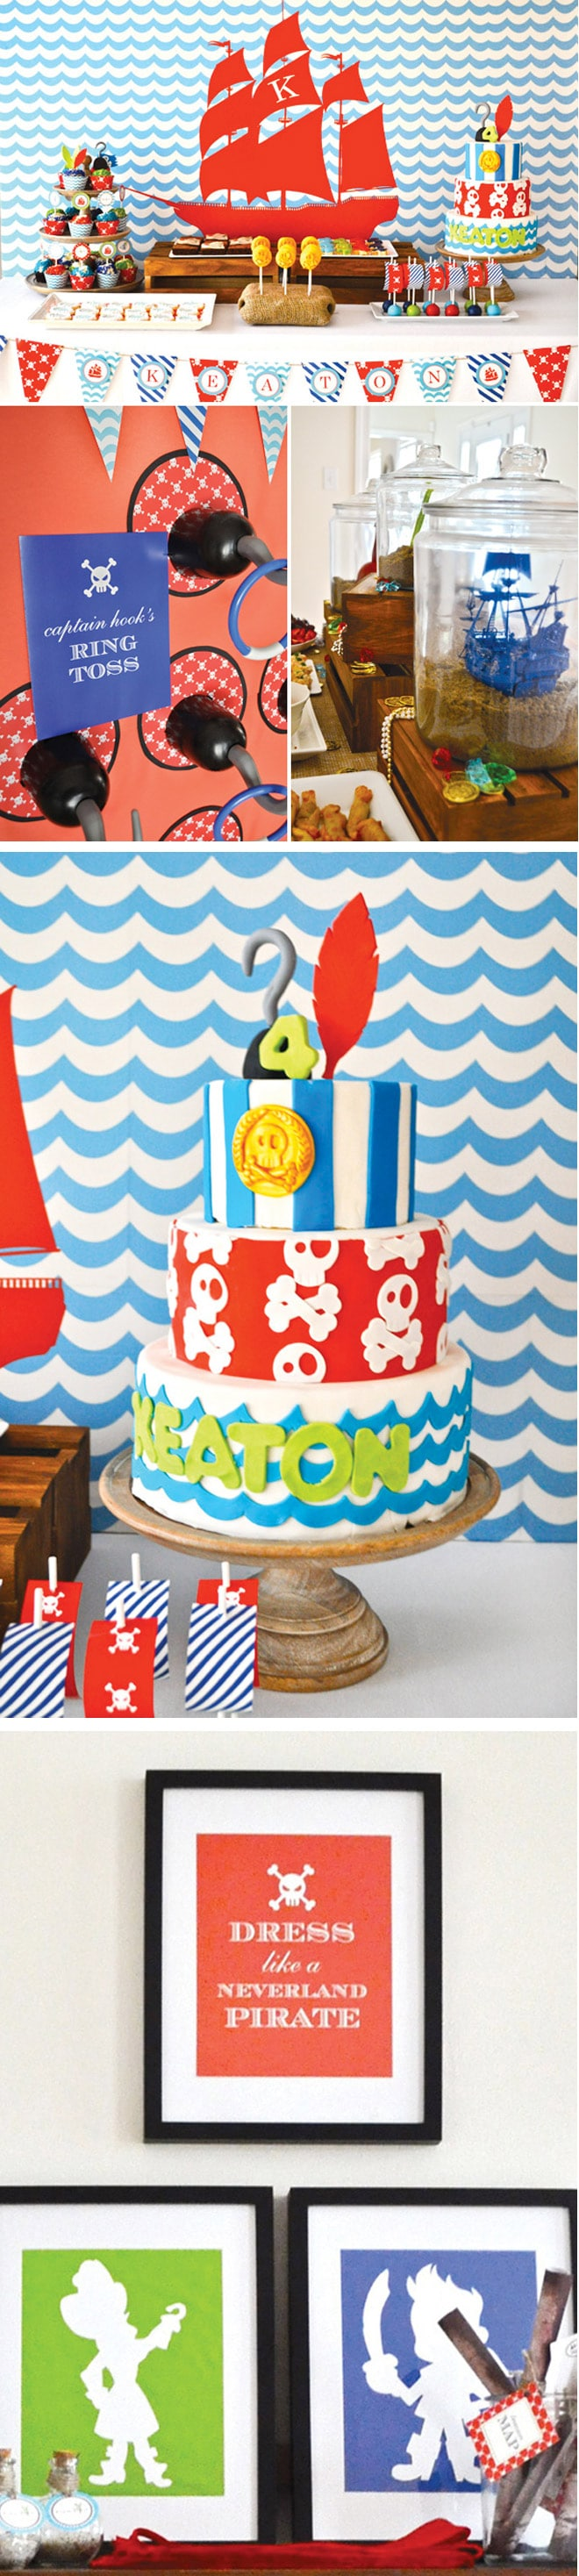 Jake and the Neverland Pirates Party // Party ideas!